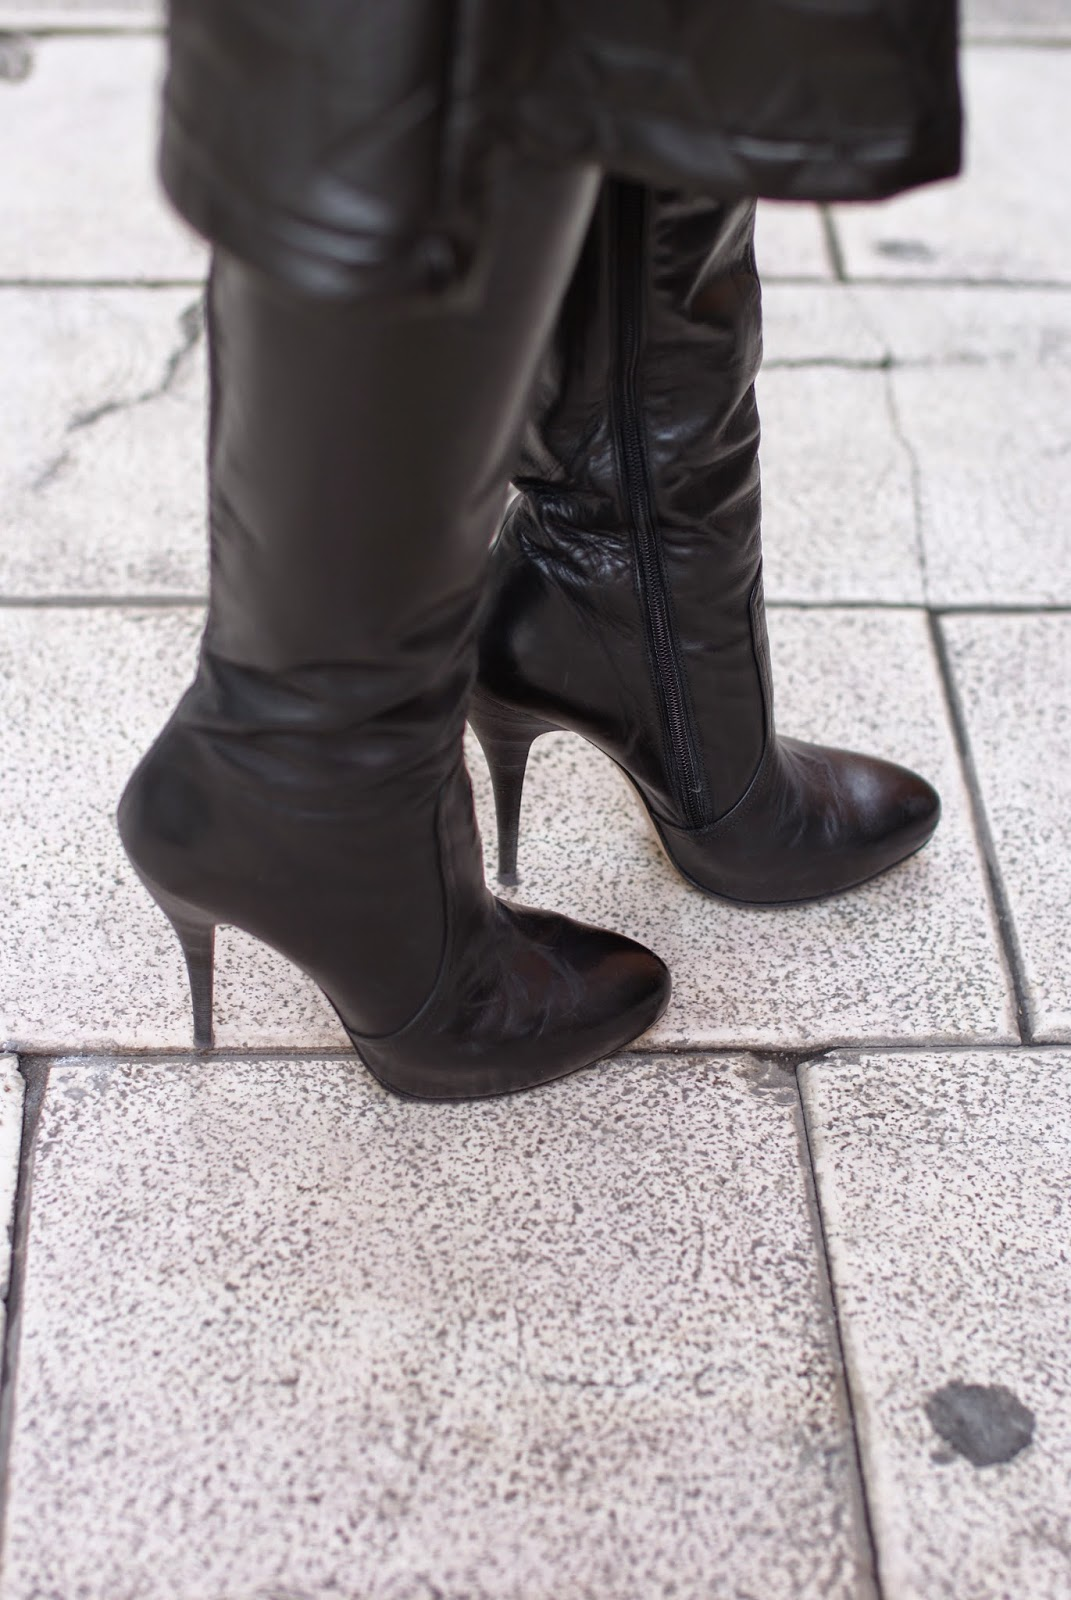 Zeis black leather stiletto boots on Fashion and Cookies fashion blogger